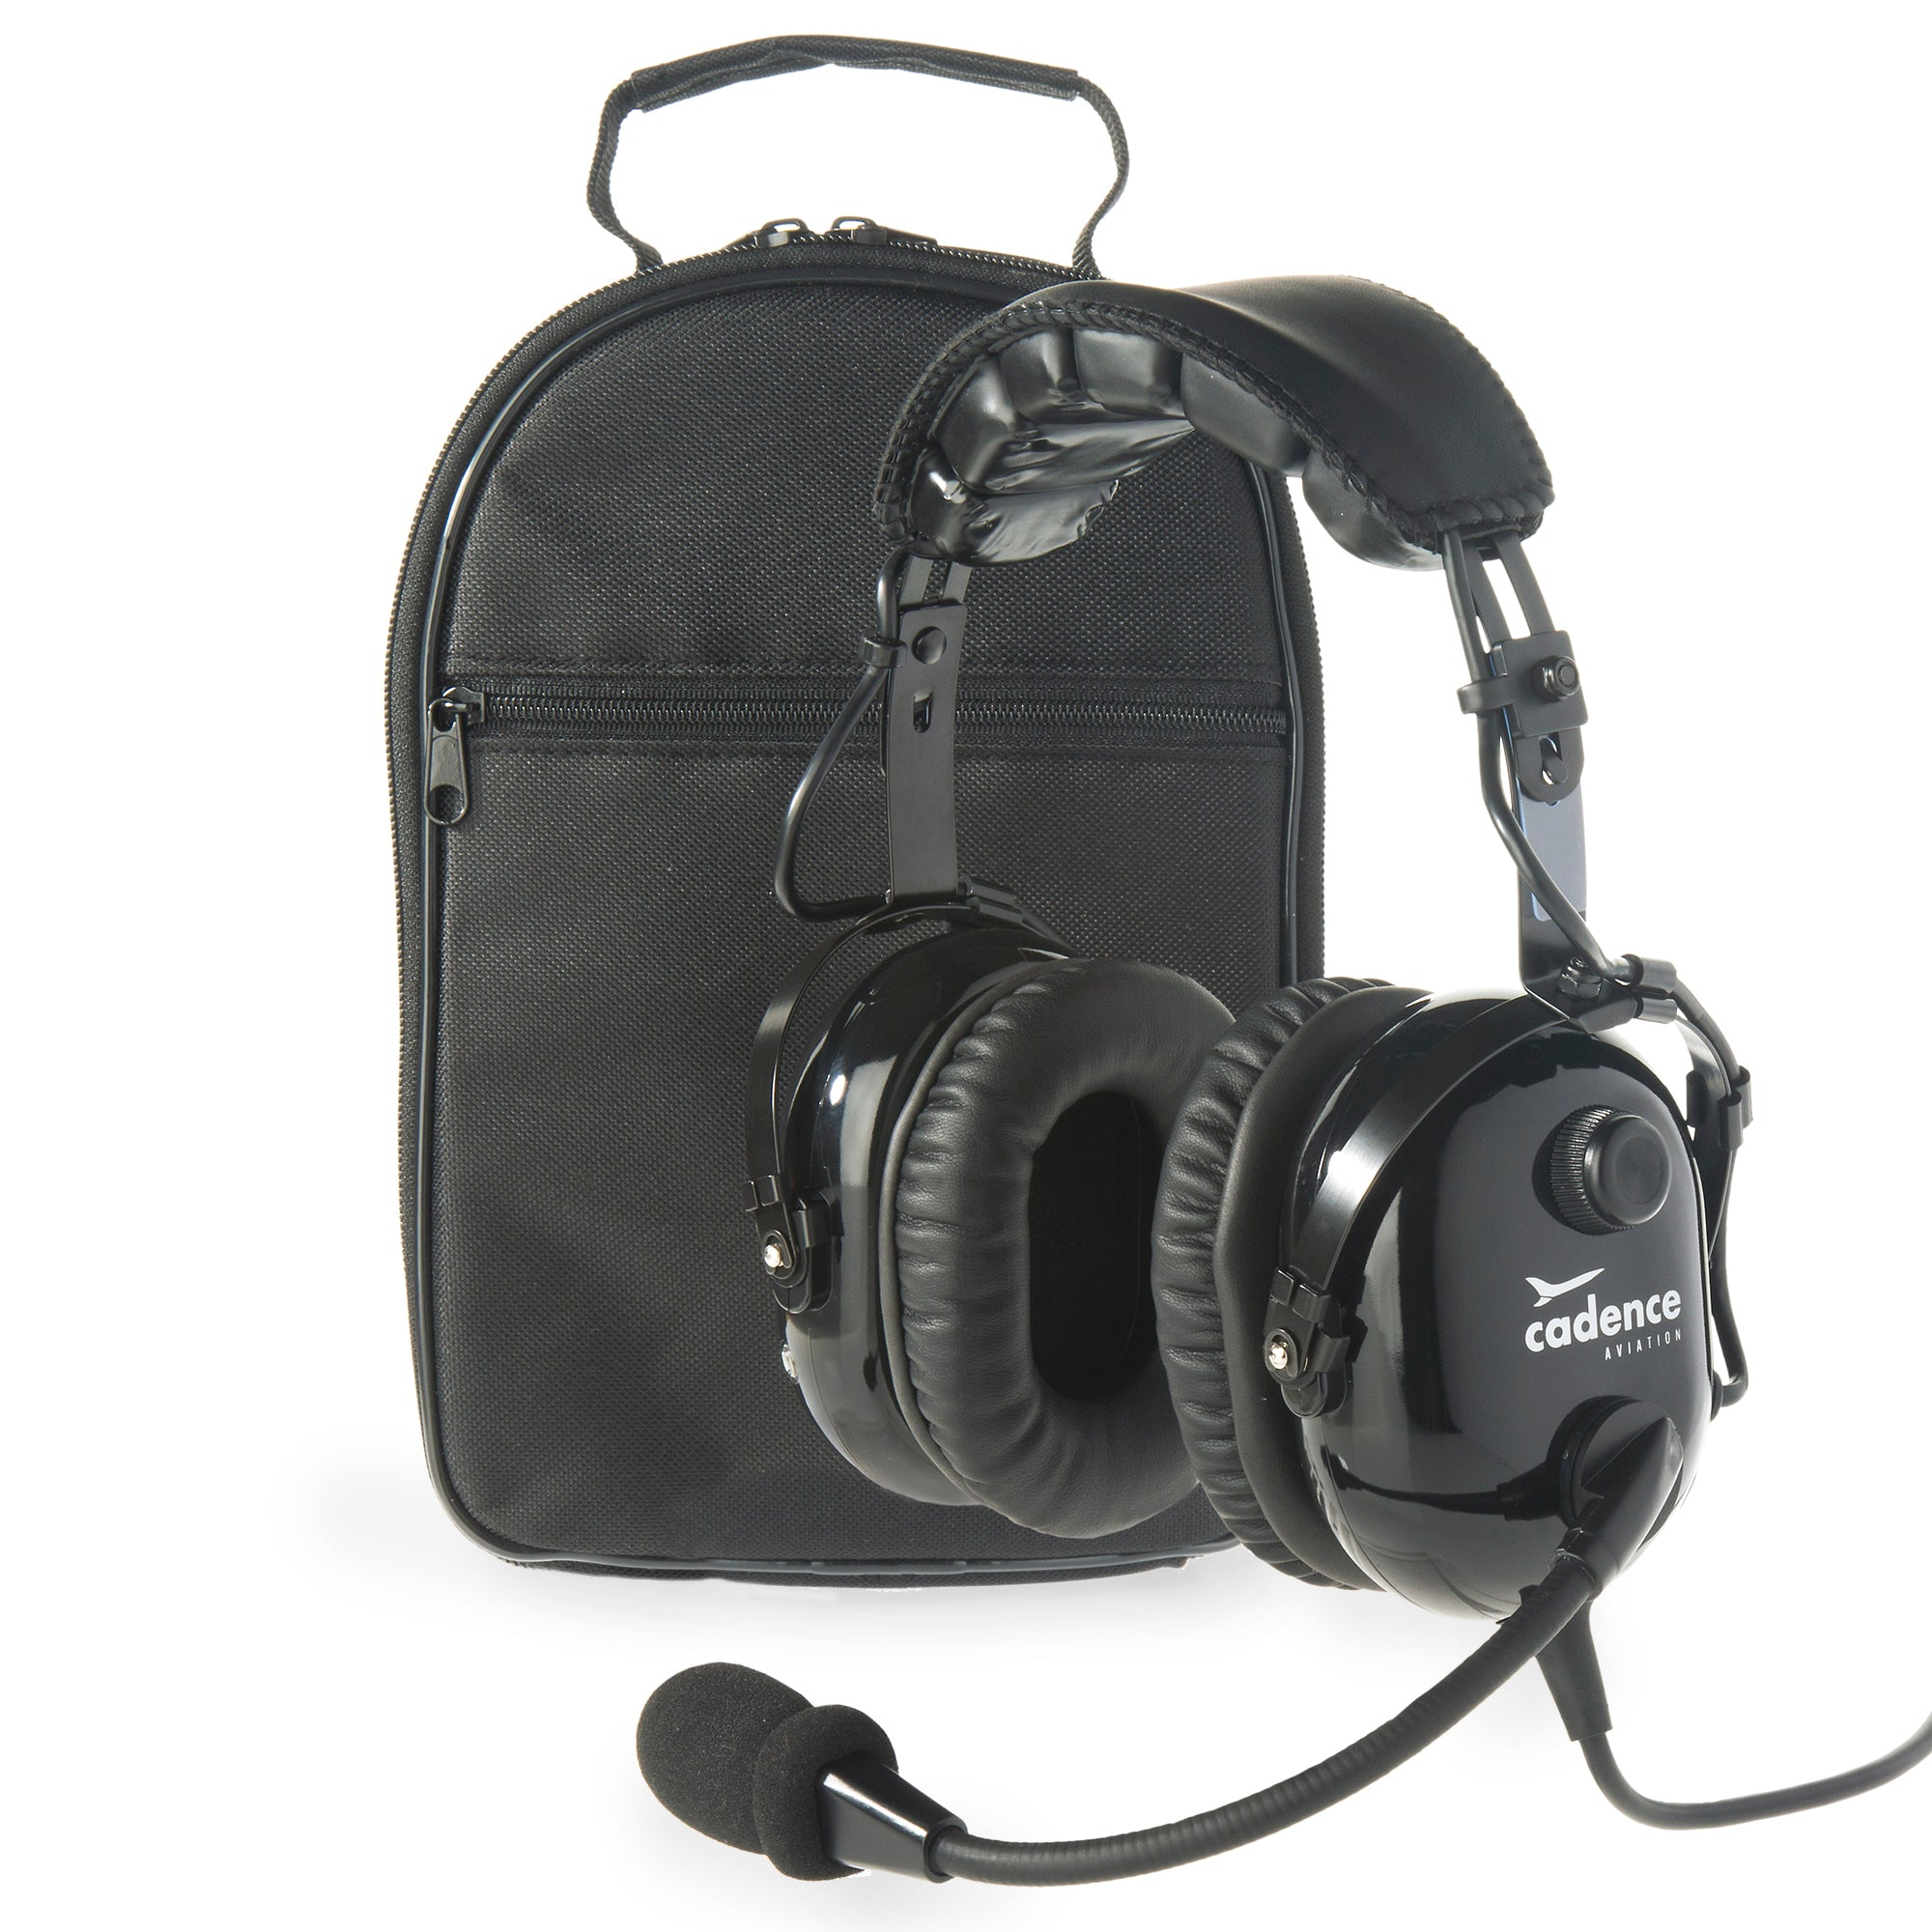 anr 1 premium anr pilot aviation headset with aux input and carrying